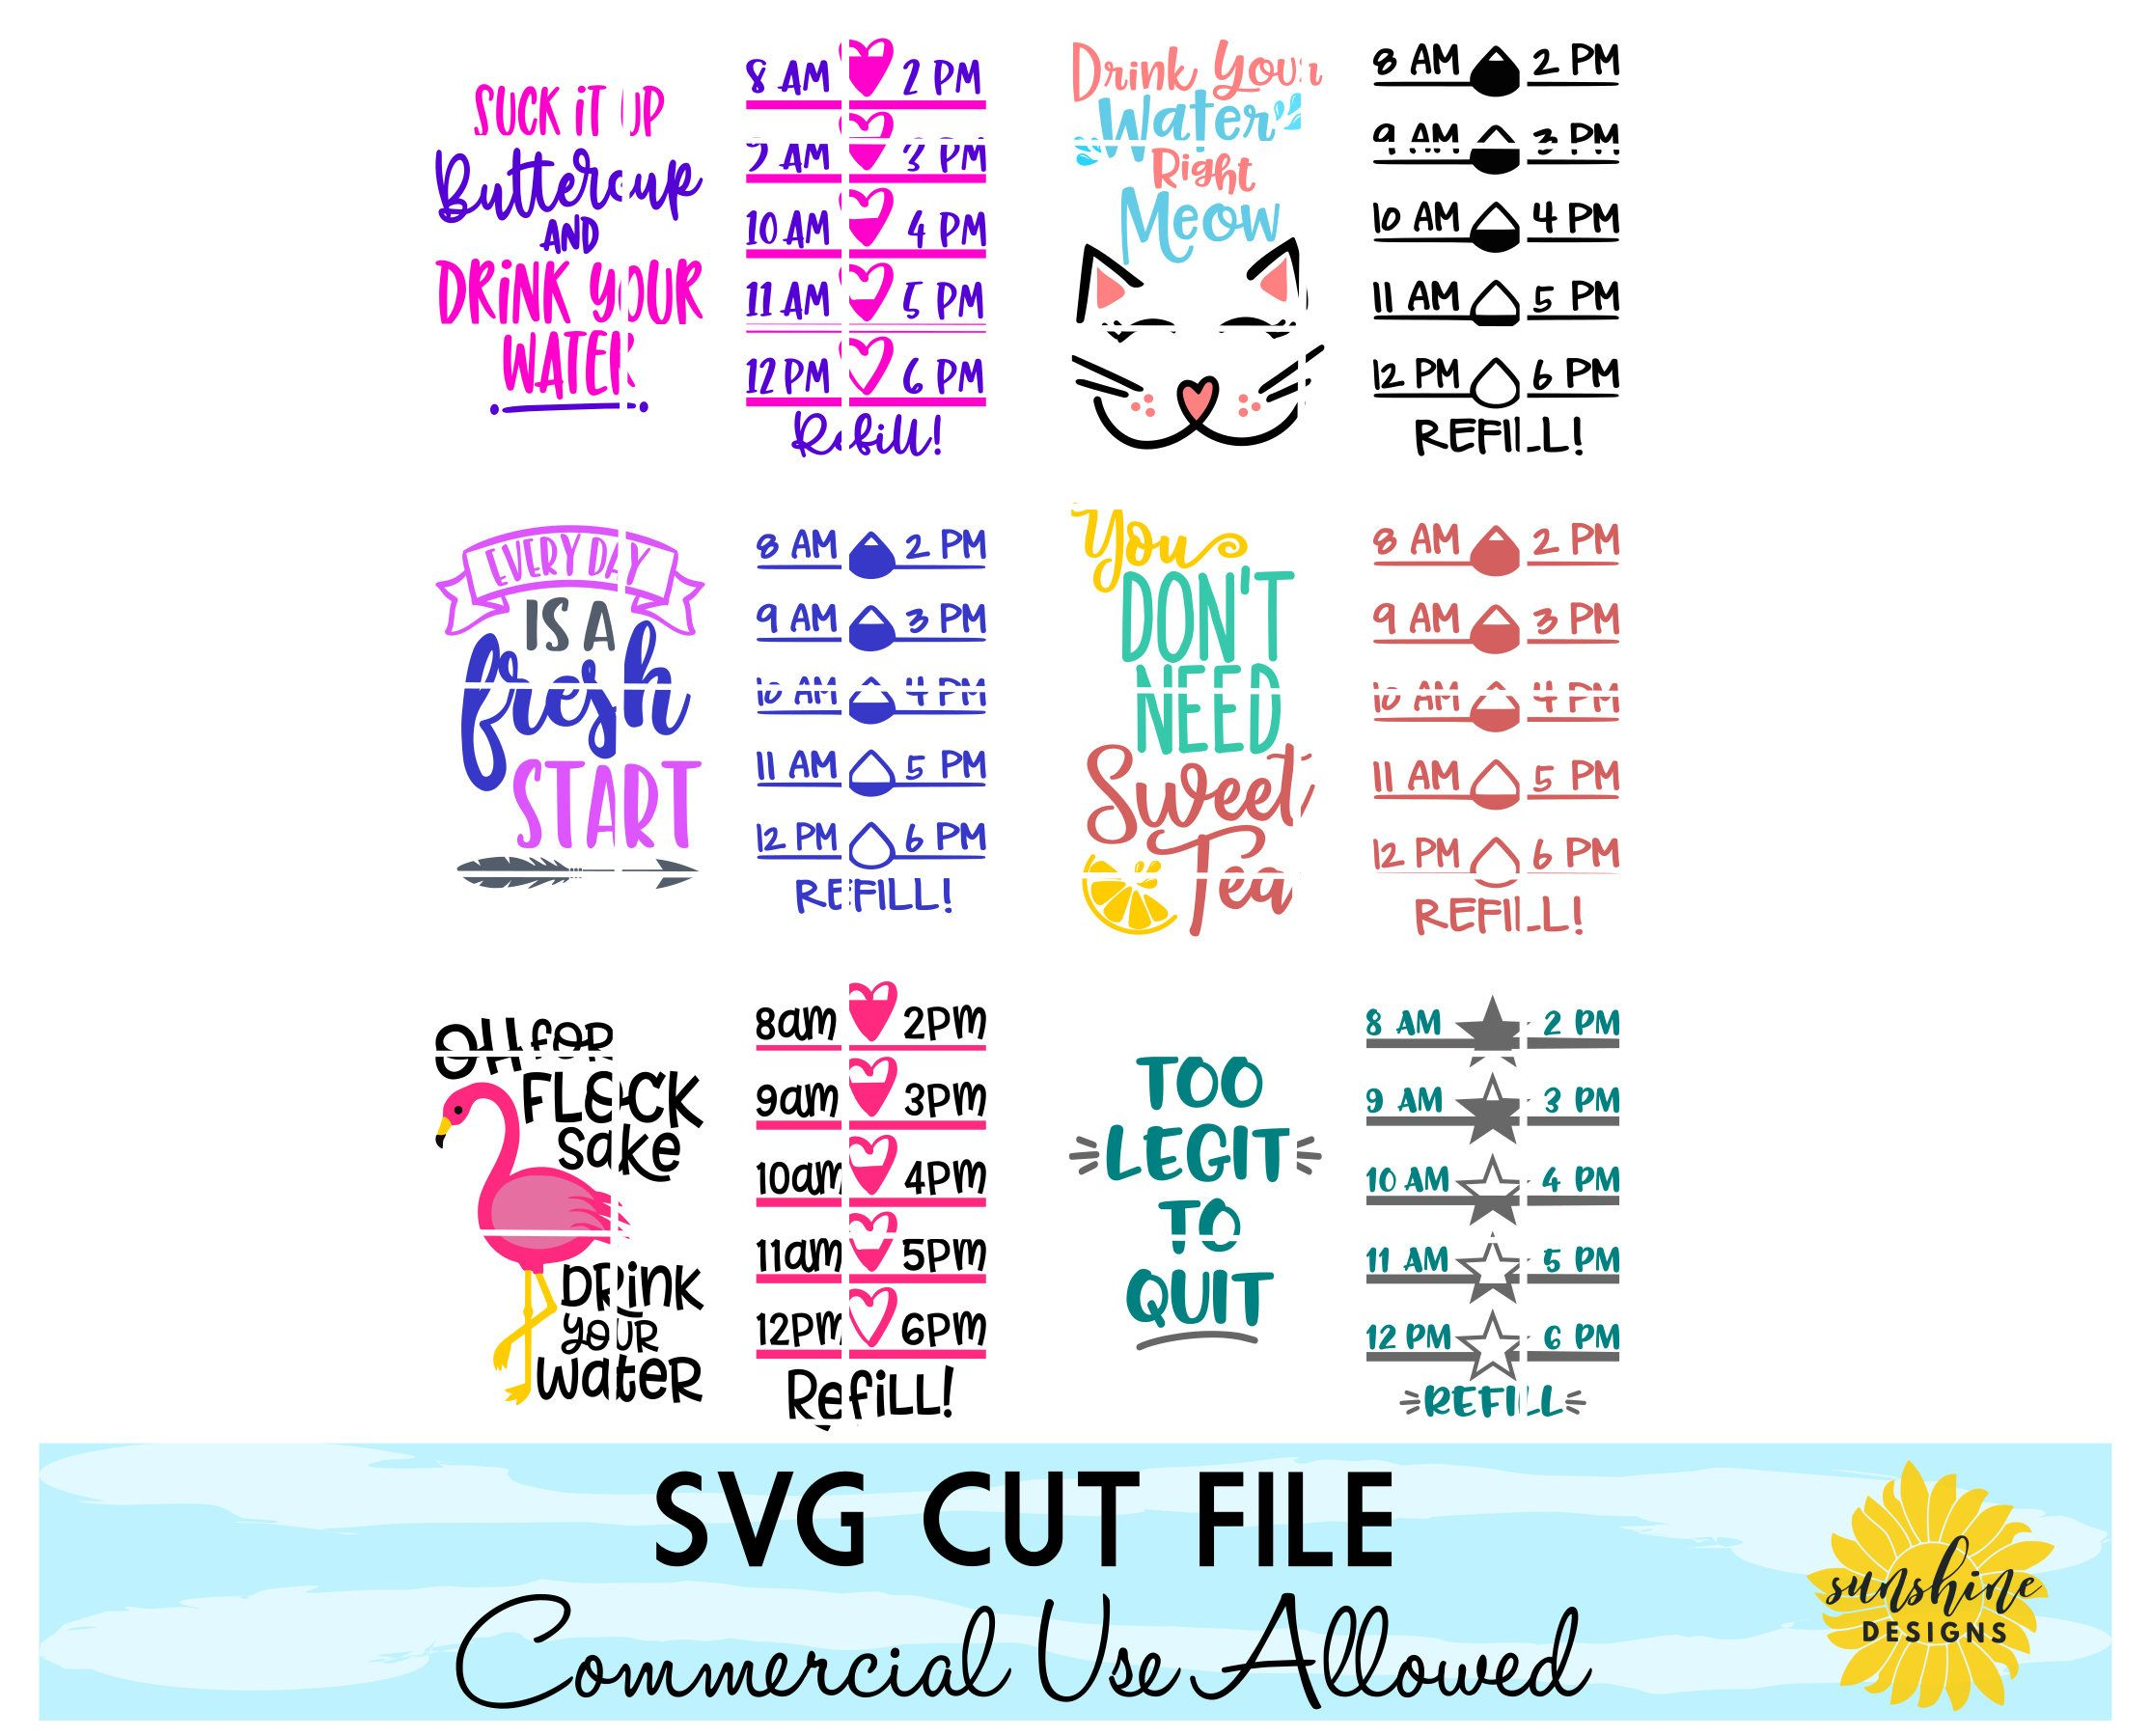 Water Tracker Svg Bundle Drink Up Buttercup Svg Water Intake Etsy In 2020 Diy Water Bottle Water Bottle Decal Cricut Vinyl